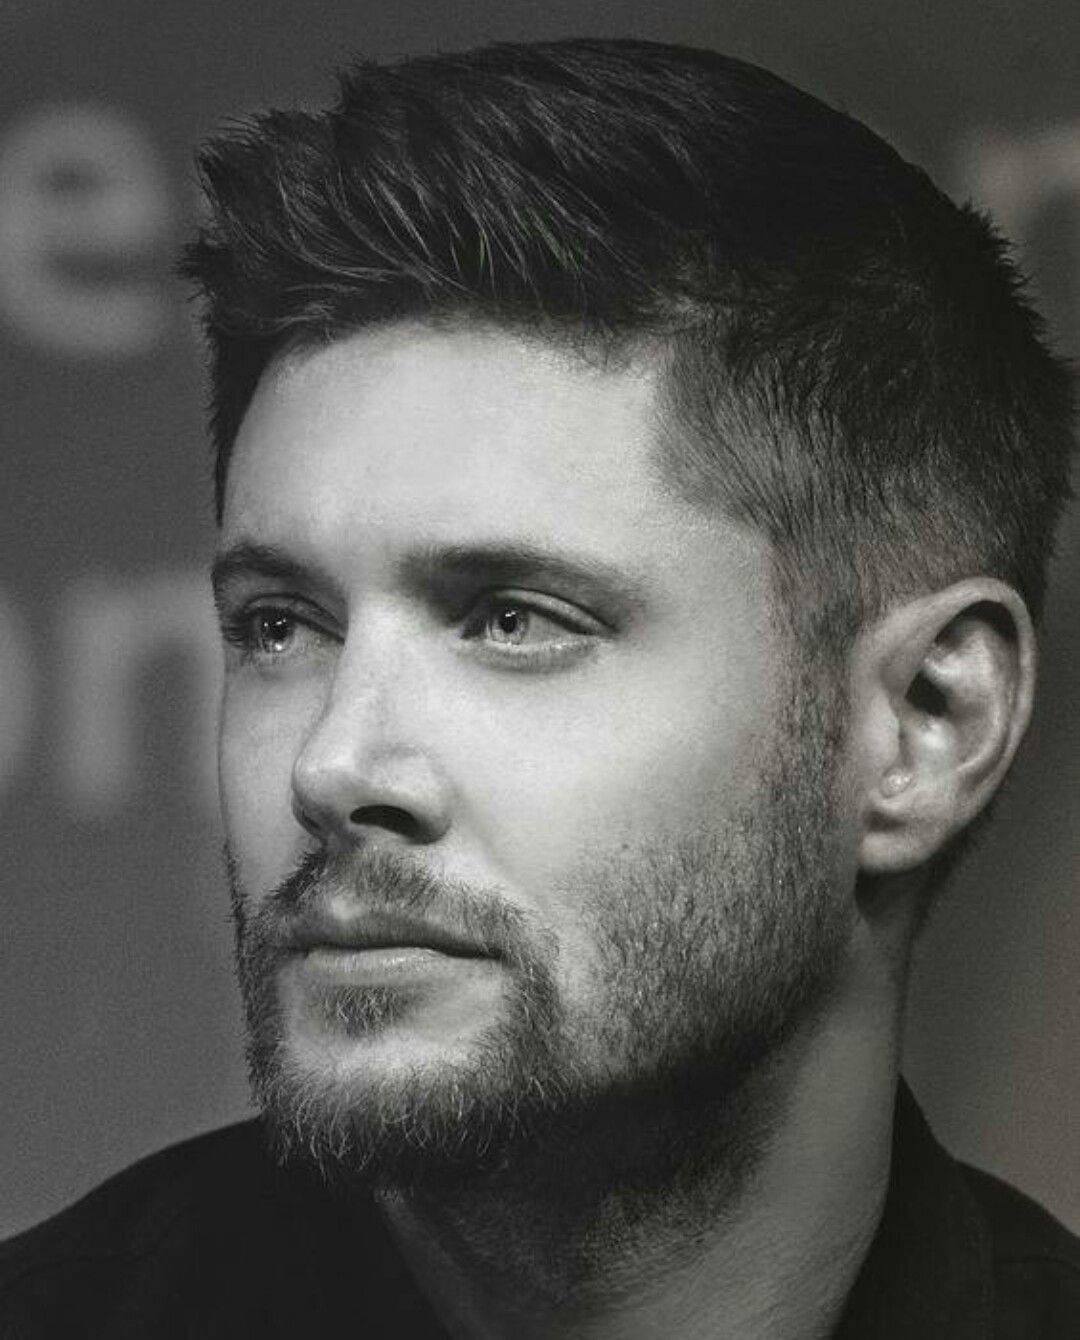 DAMN! he's fine as hell! #jensenackles